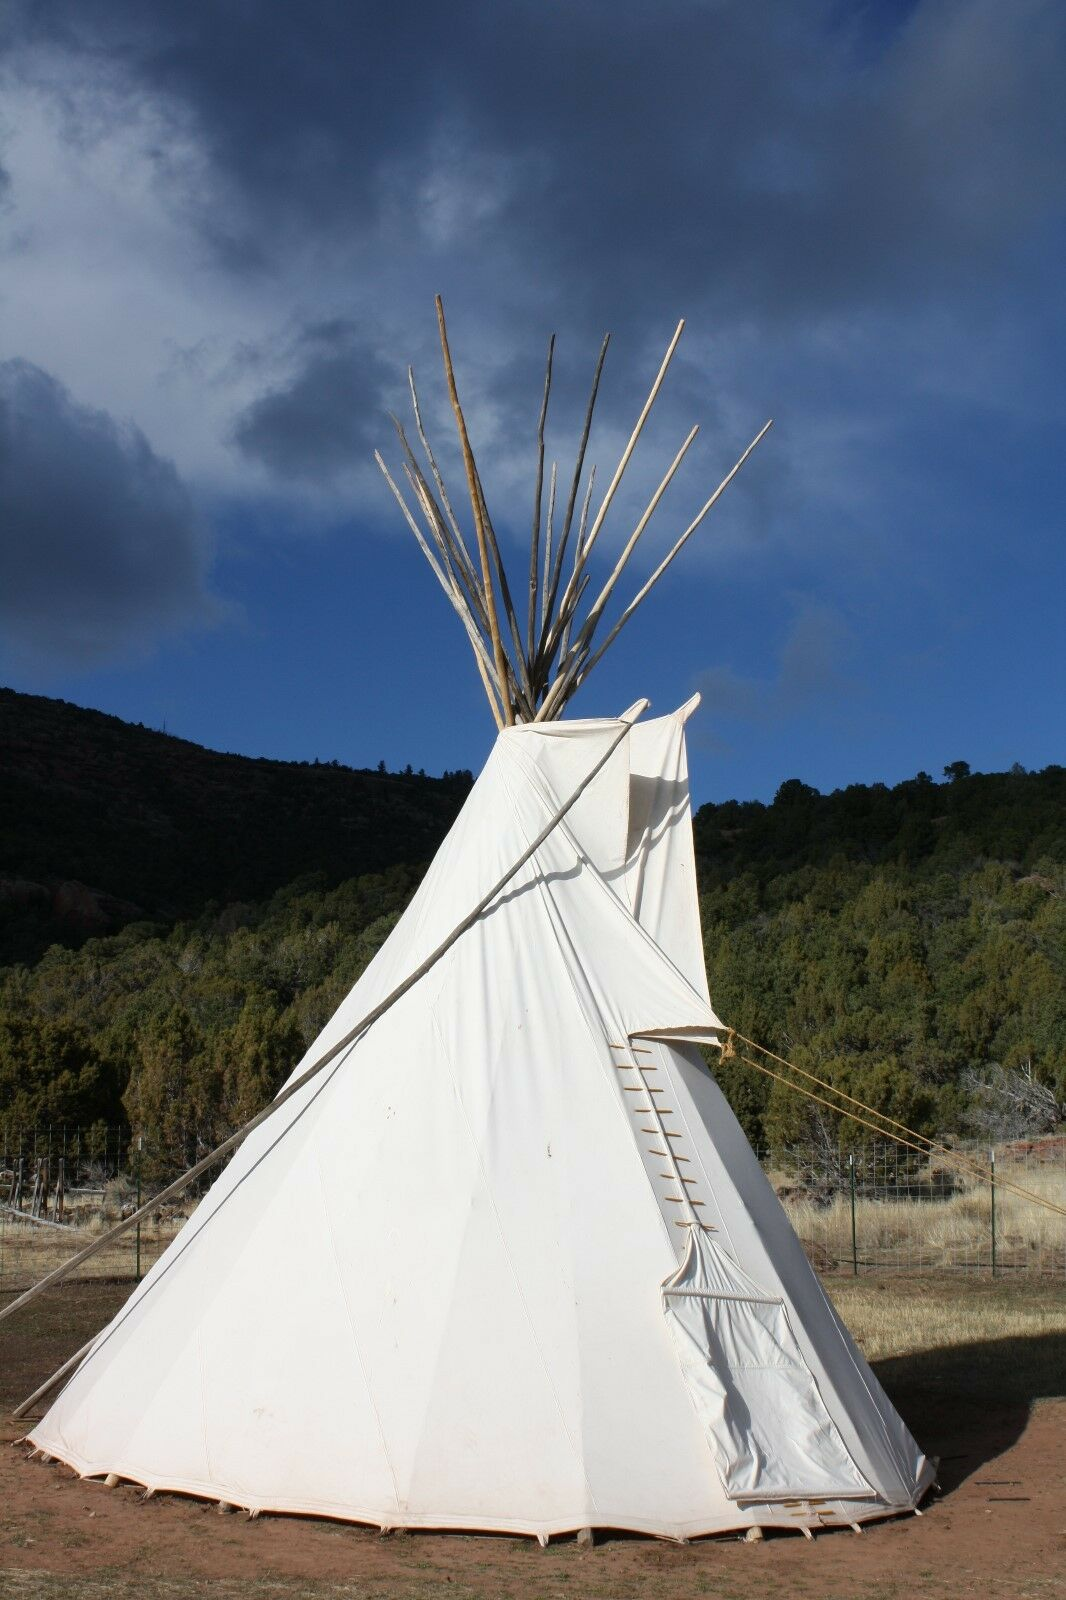 Sioux Estilo Patio Tipi Tipi - 12ft.  Sunforger Lona